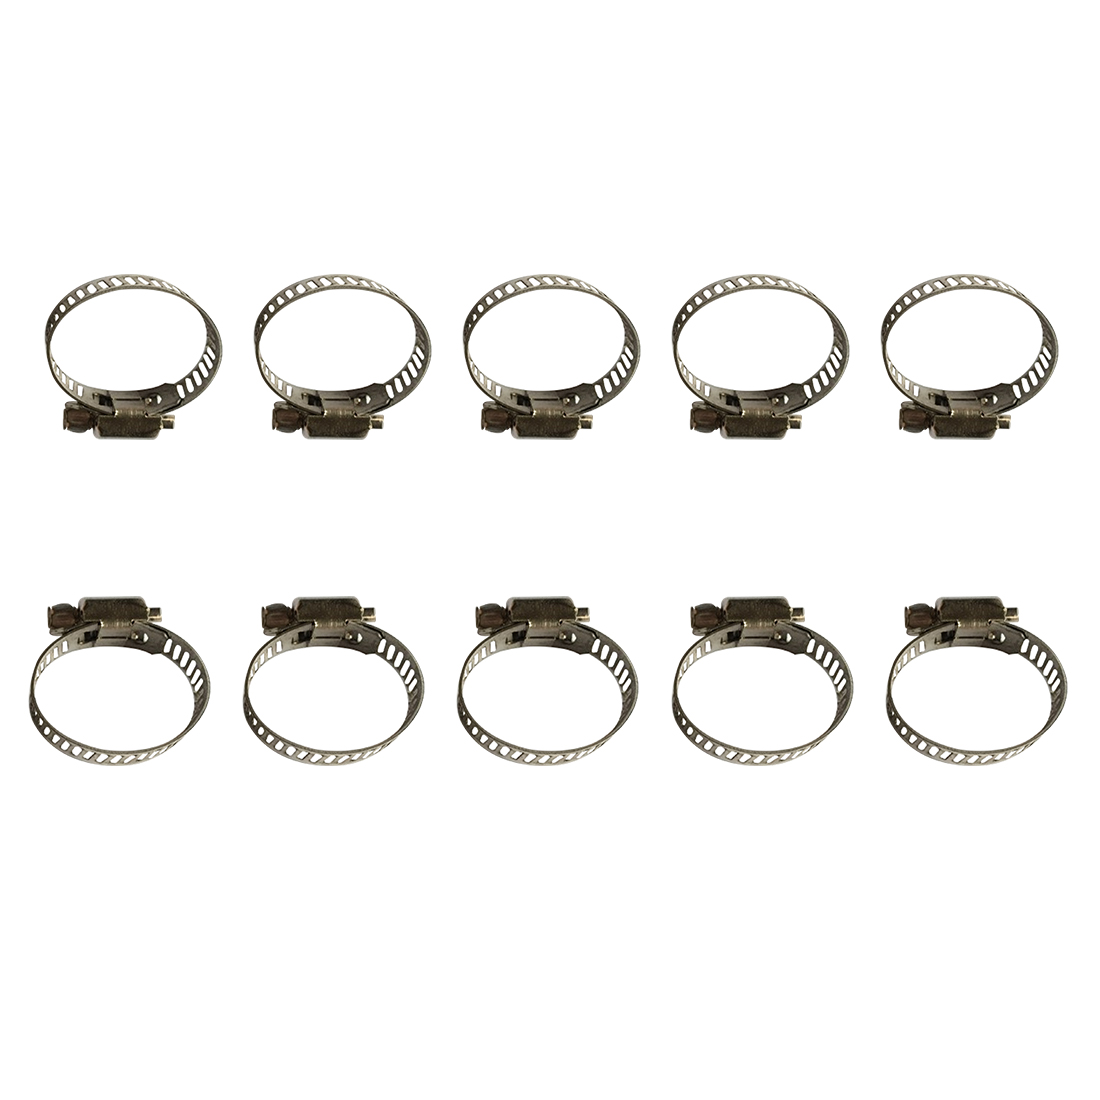 YDS All 300 Grade Stainless Steel High Torque Hose Clamp 1//2 Bandwidth Pack of 10 SAE Size 20 13//16 to 1-3//4 Diameter Range Worm-Drive